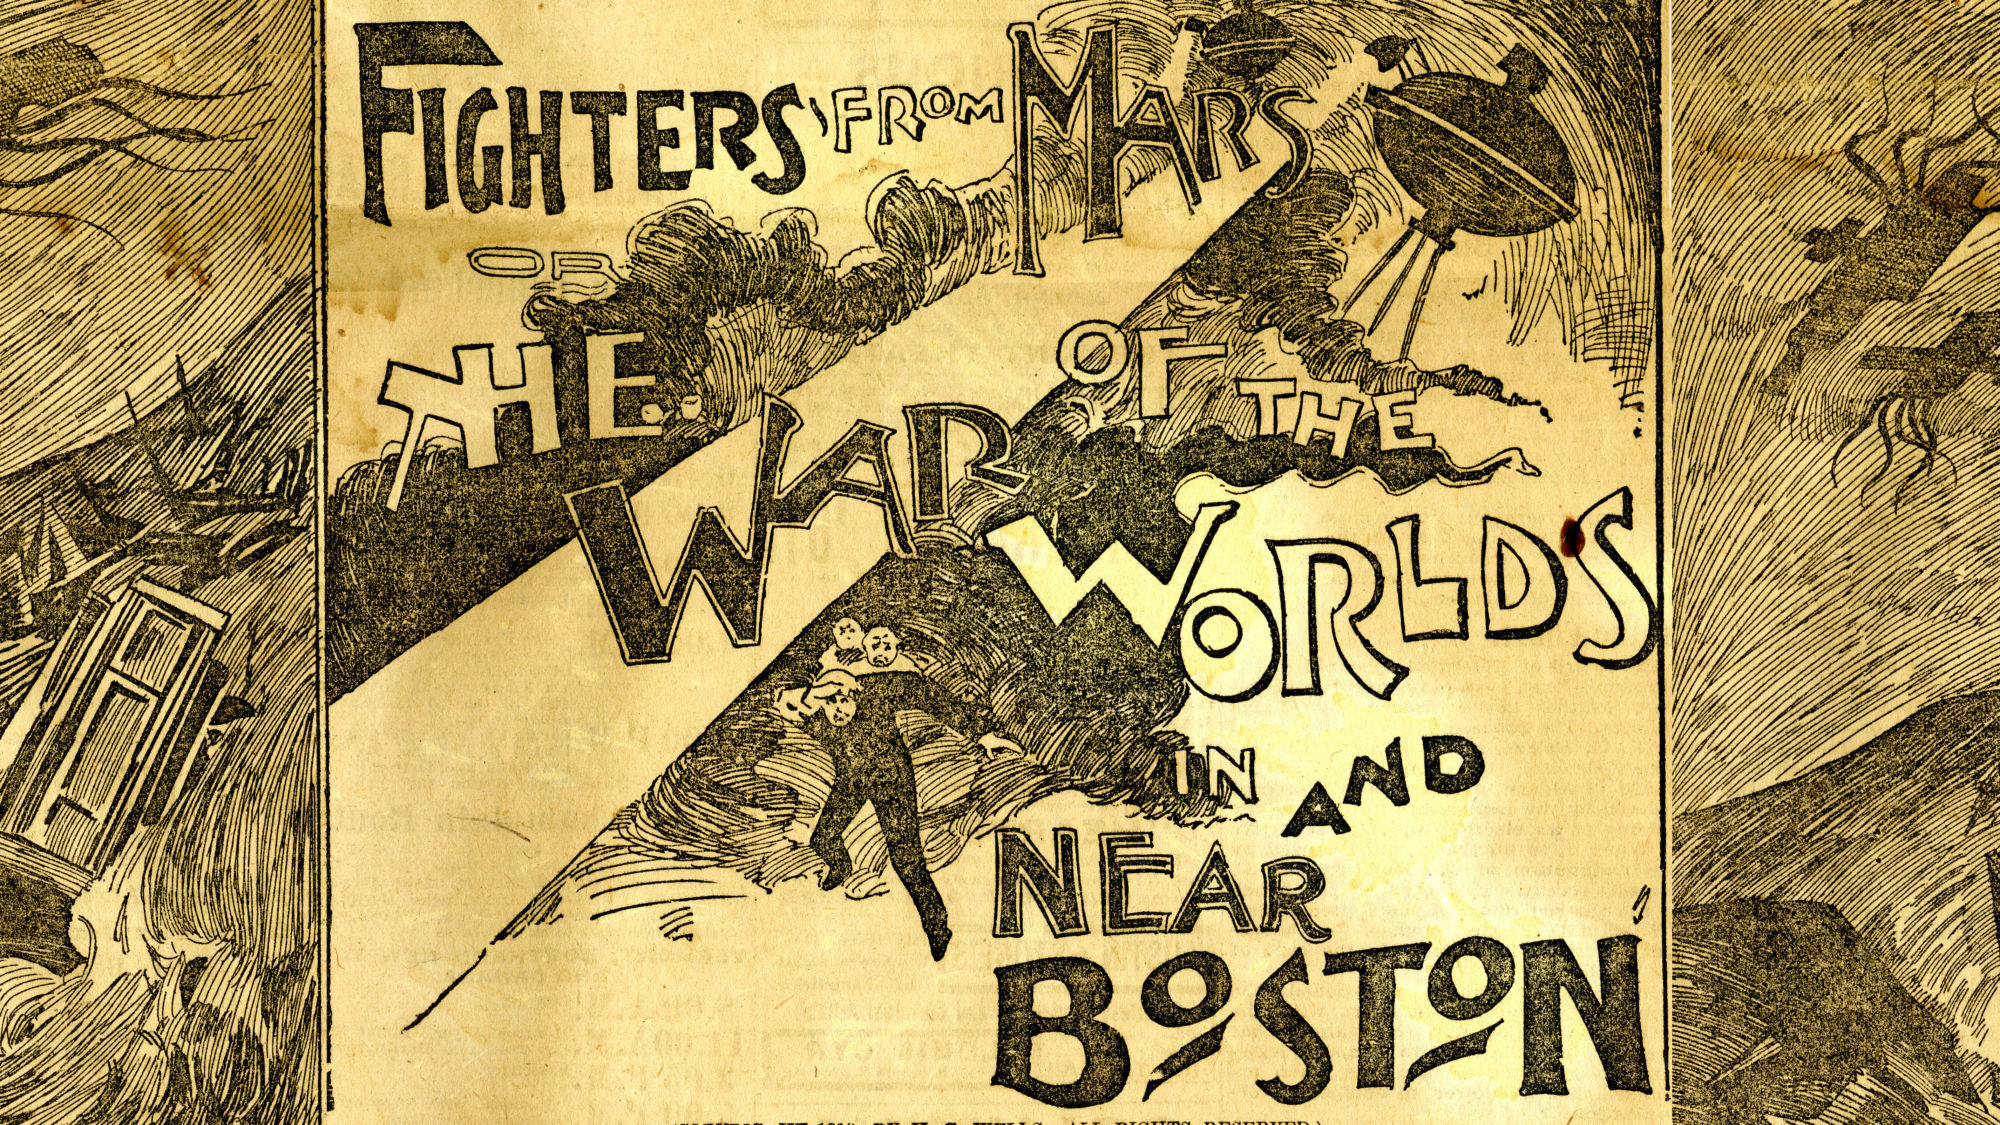 THE ISSUE: Fighters from Mars Attack